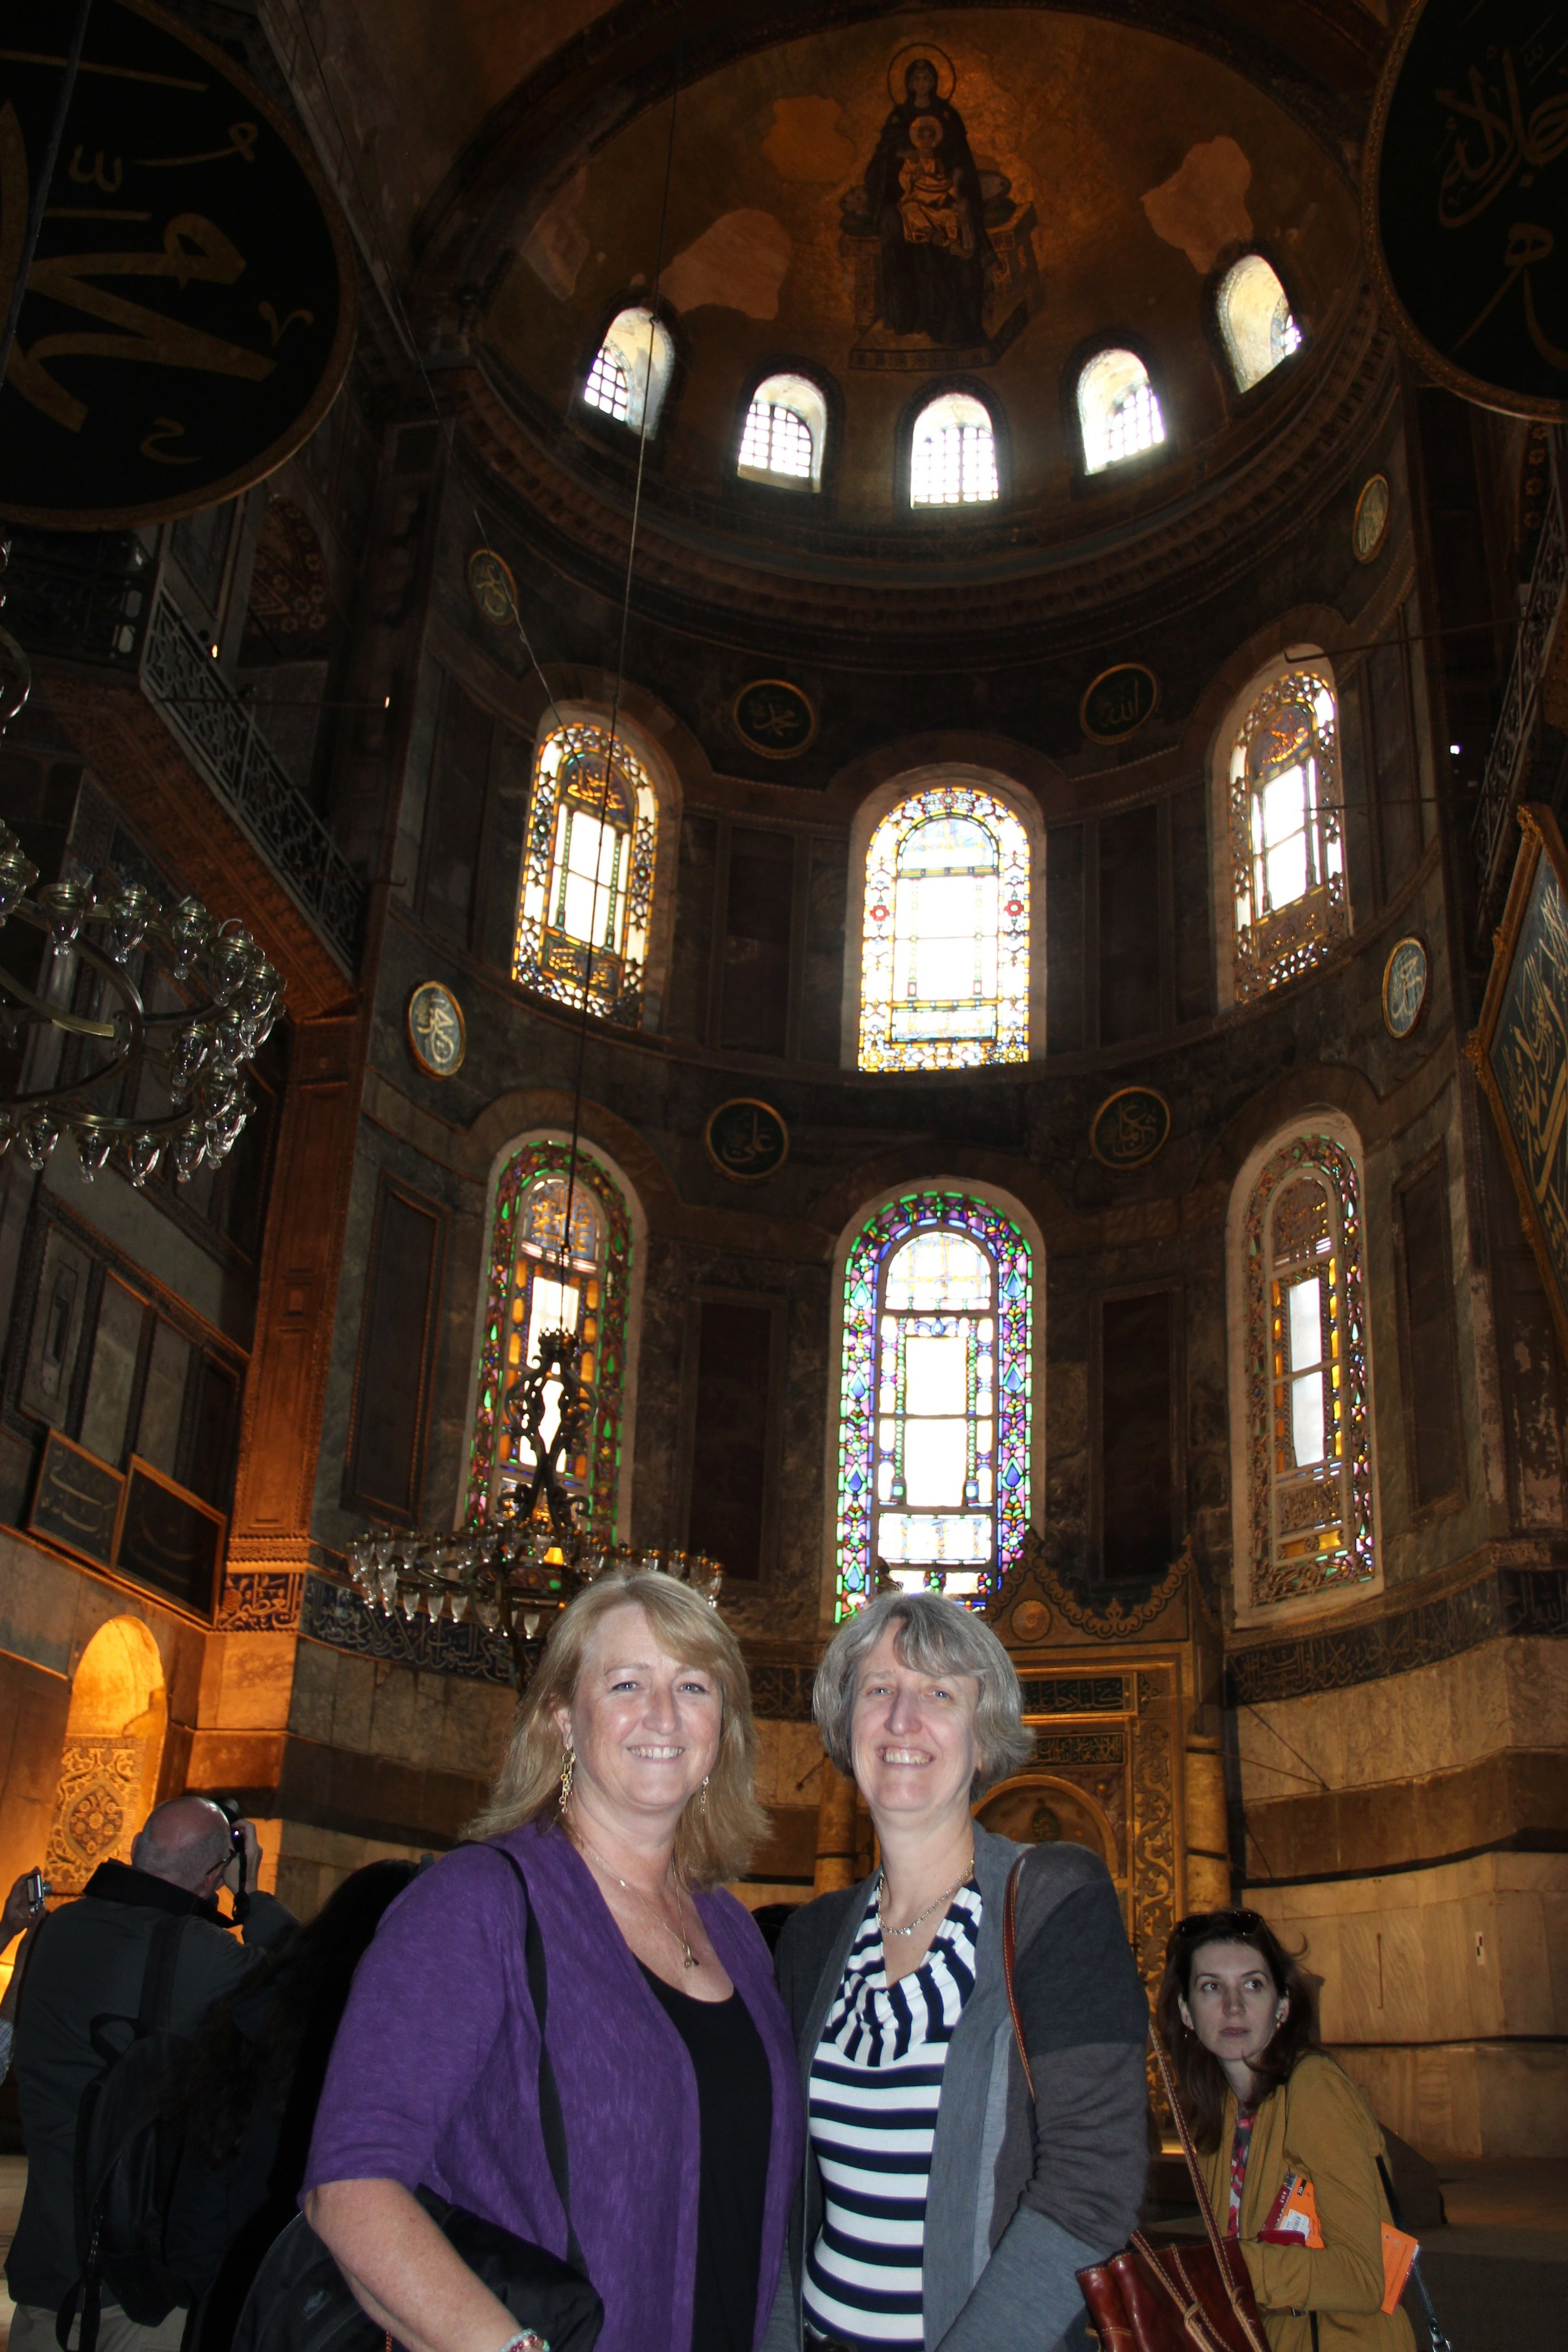 Glorying in the scale of Justinian's vision The largest building in the world for 1,000 years.